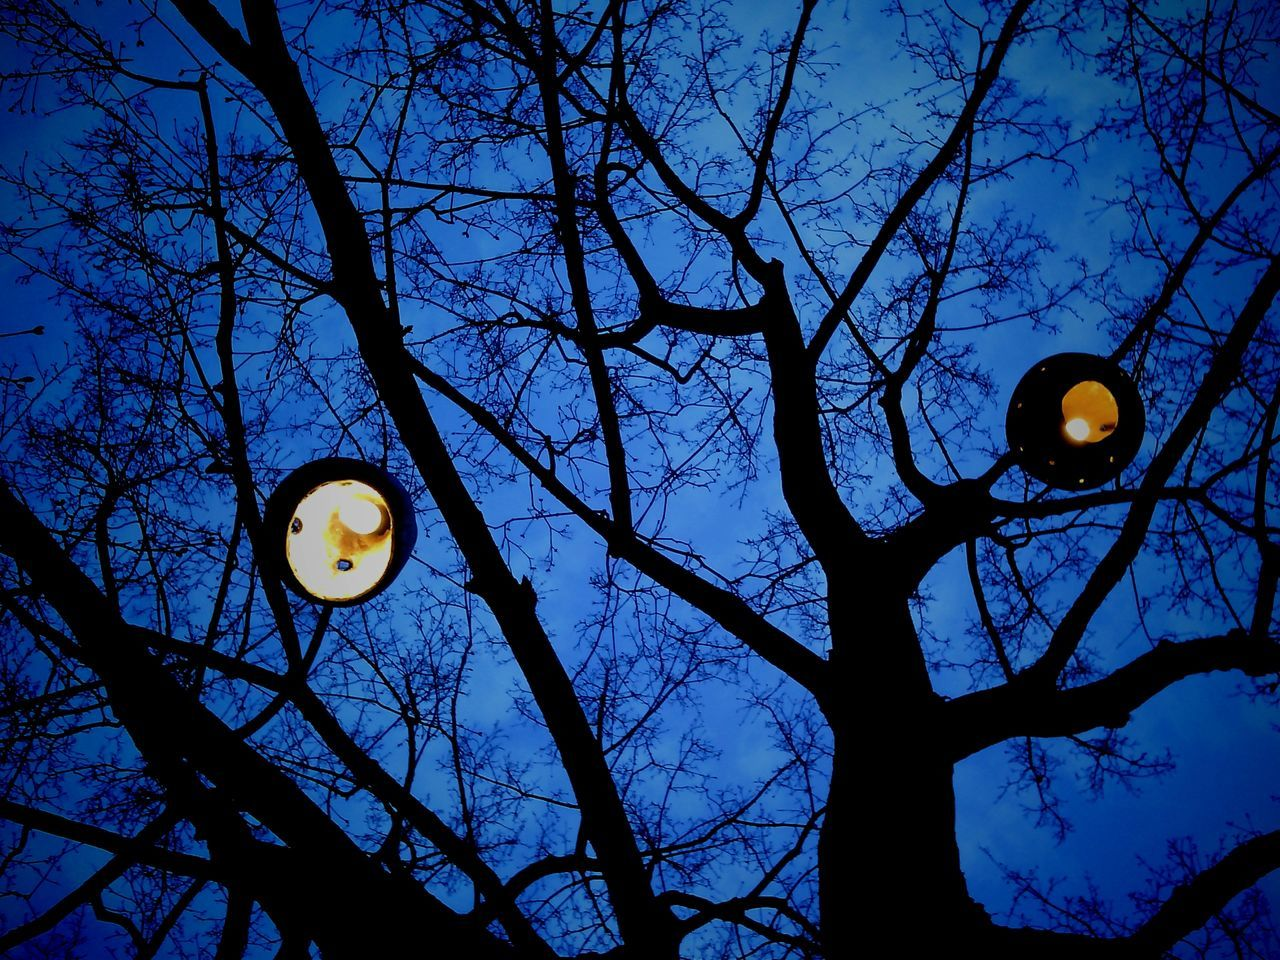 Lamps Tree Lampions Night Krakow, Re